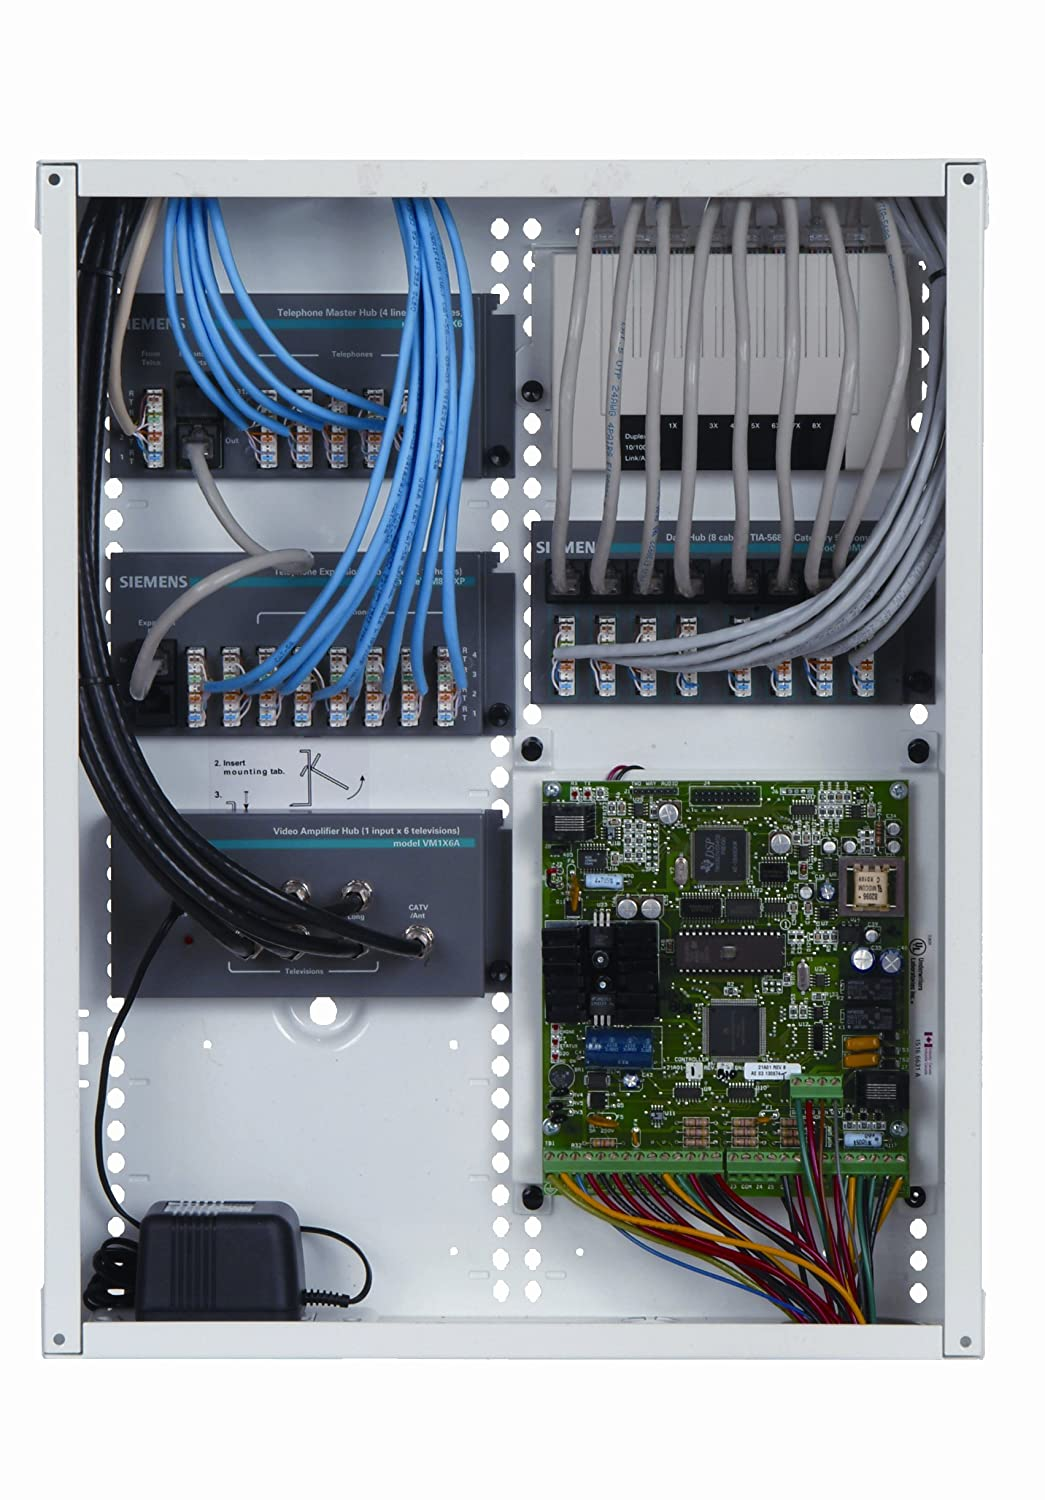 Siemens Structured Wiring Diagram Portal Enclosure Ups Ne36c 36 Inch Network Cover Rh Amazon Com Cabling